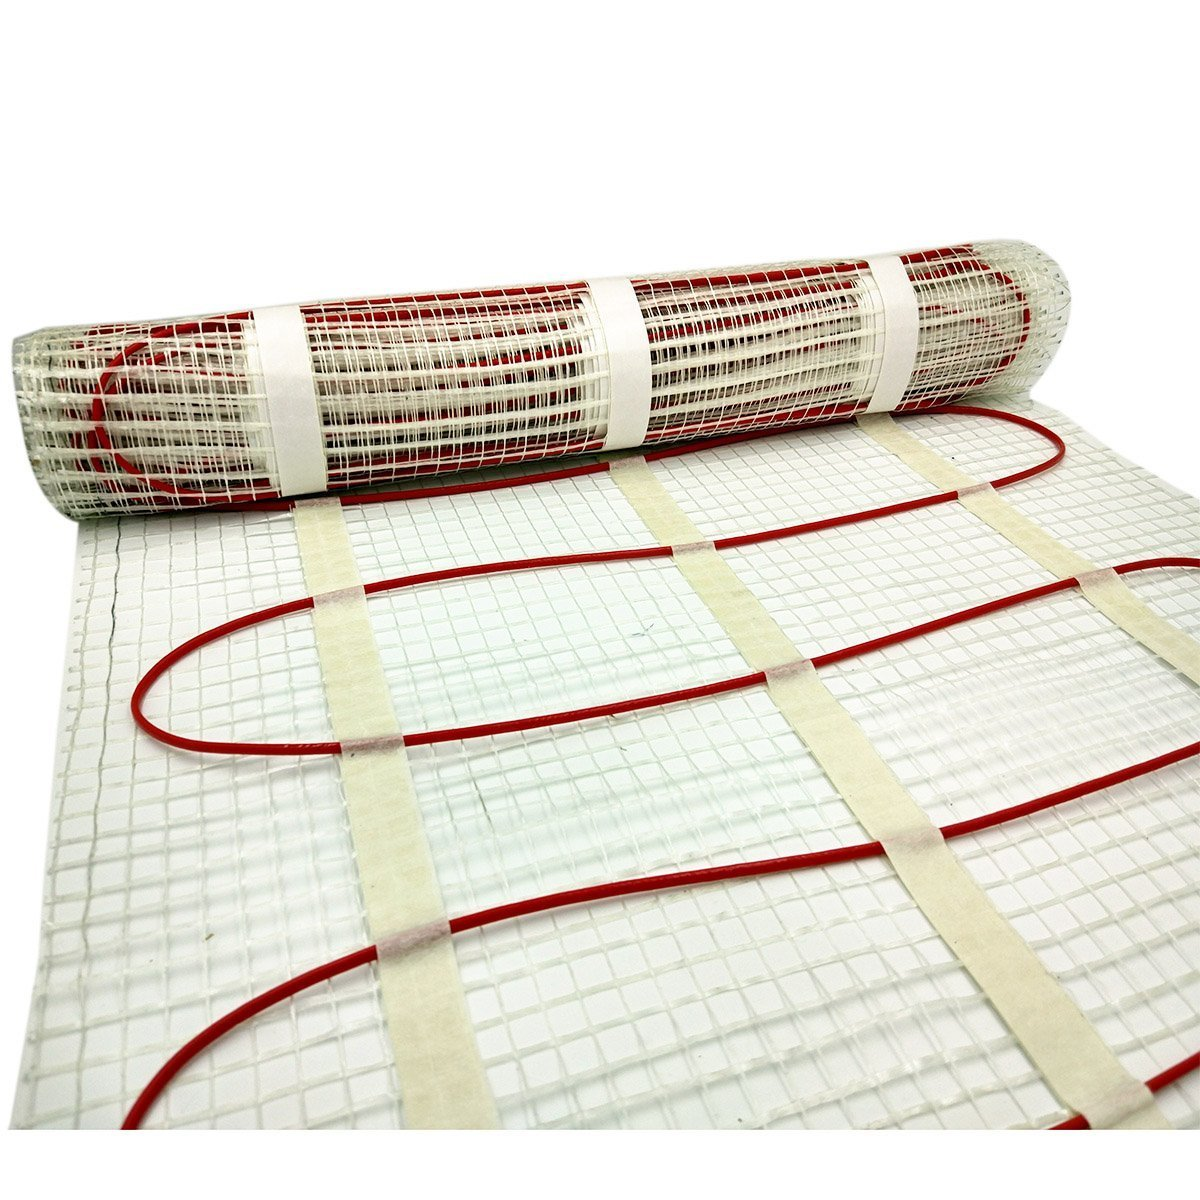 50 sqft SENPHUS 120V Electric Radiant Underfloor Heating System Warm In Tiles Cable Self-adhesive Mat by Senphus (Image #2)